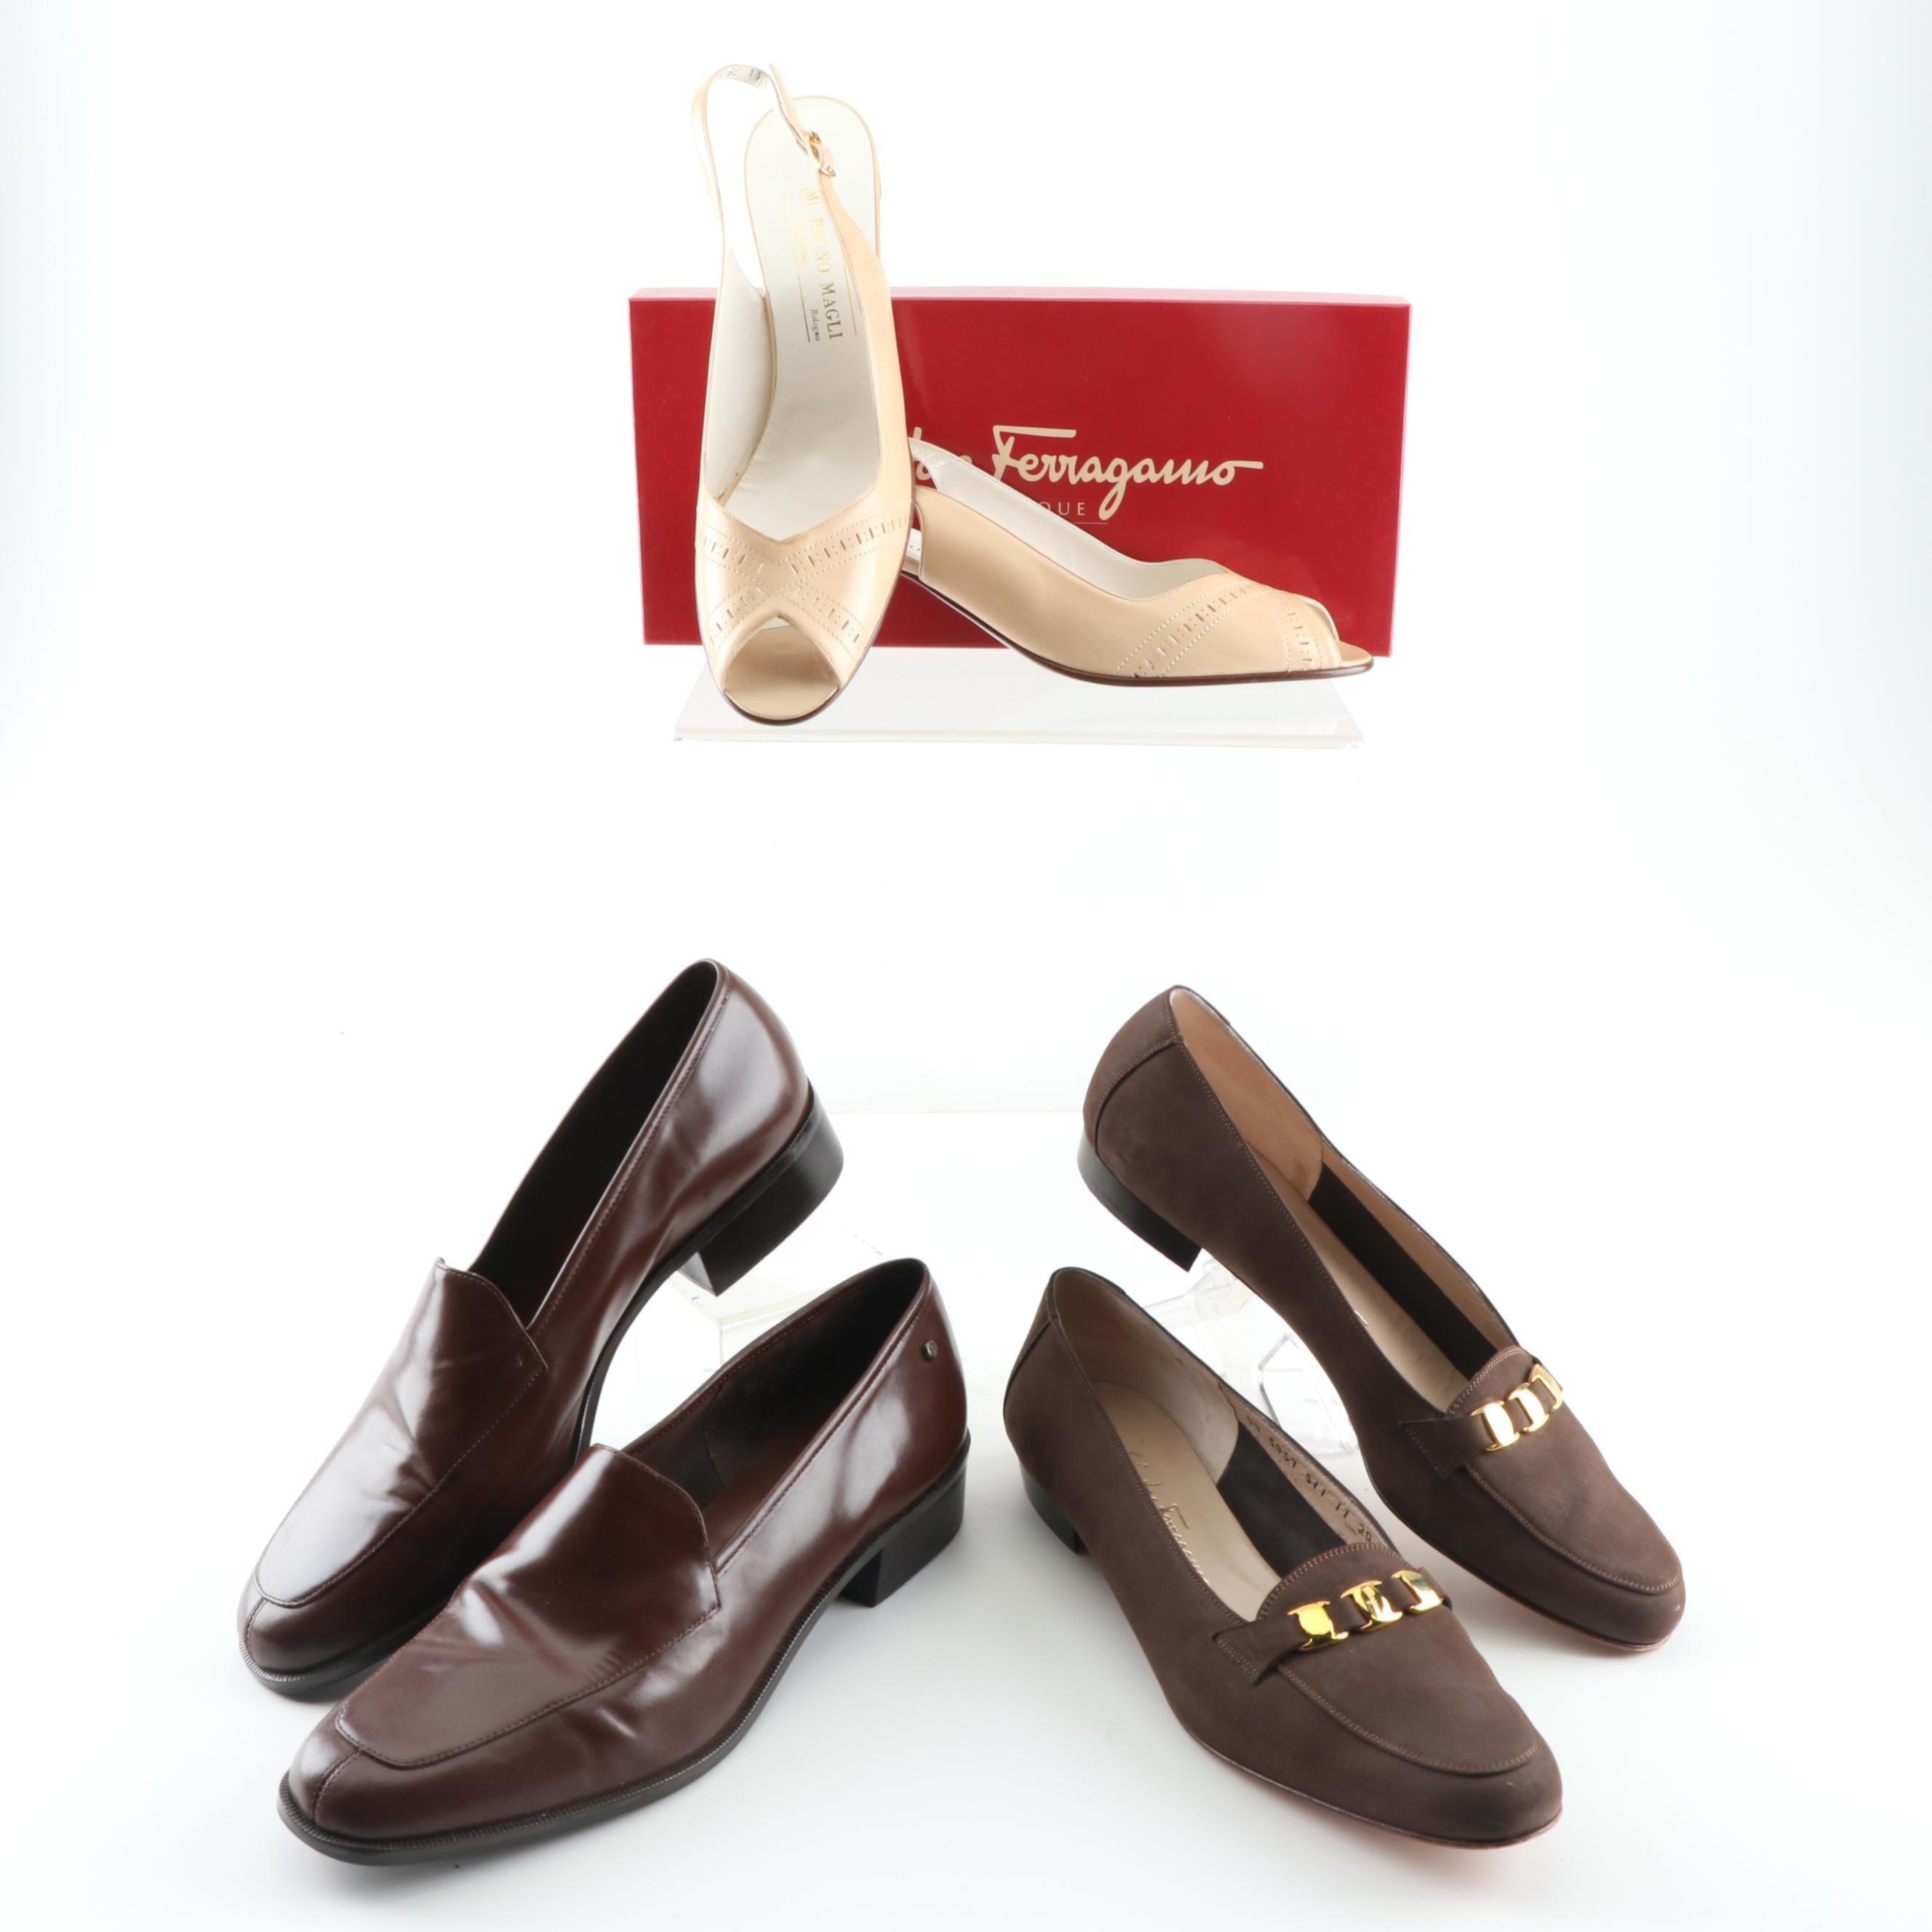 Women's Leather Slingback Pumps and Loafers including Bruno Magli